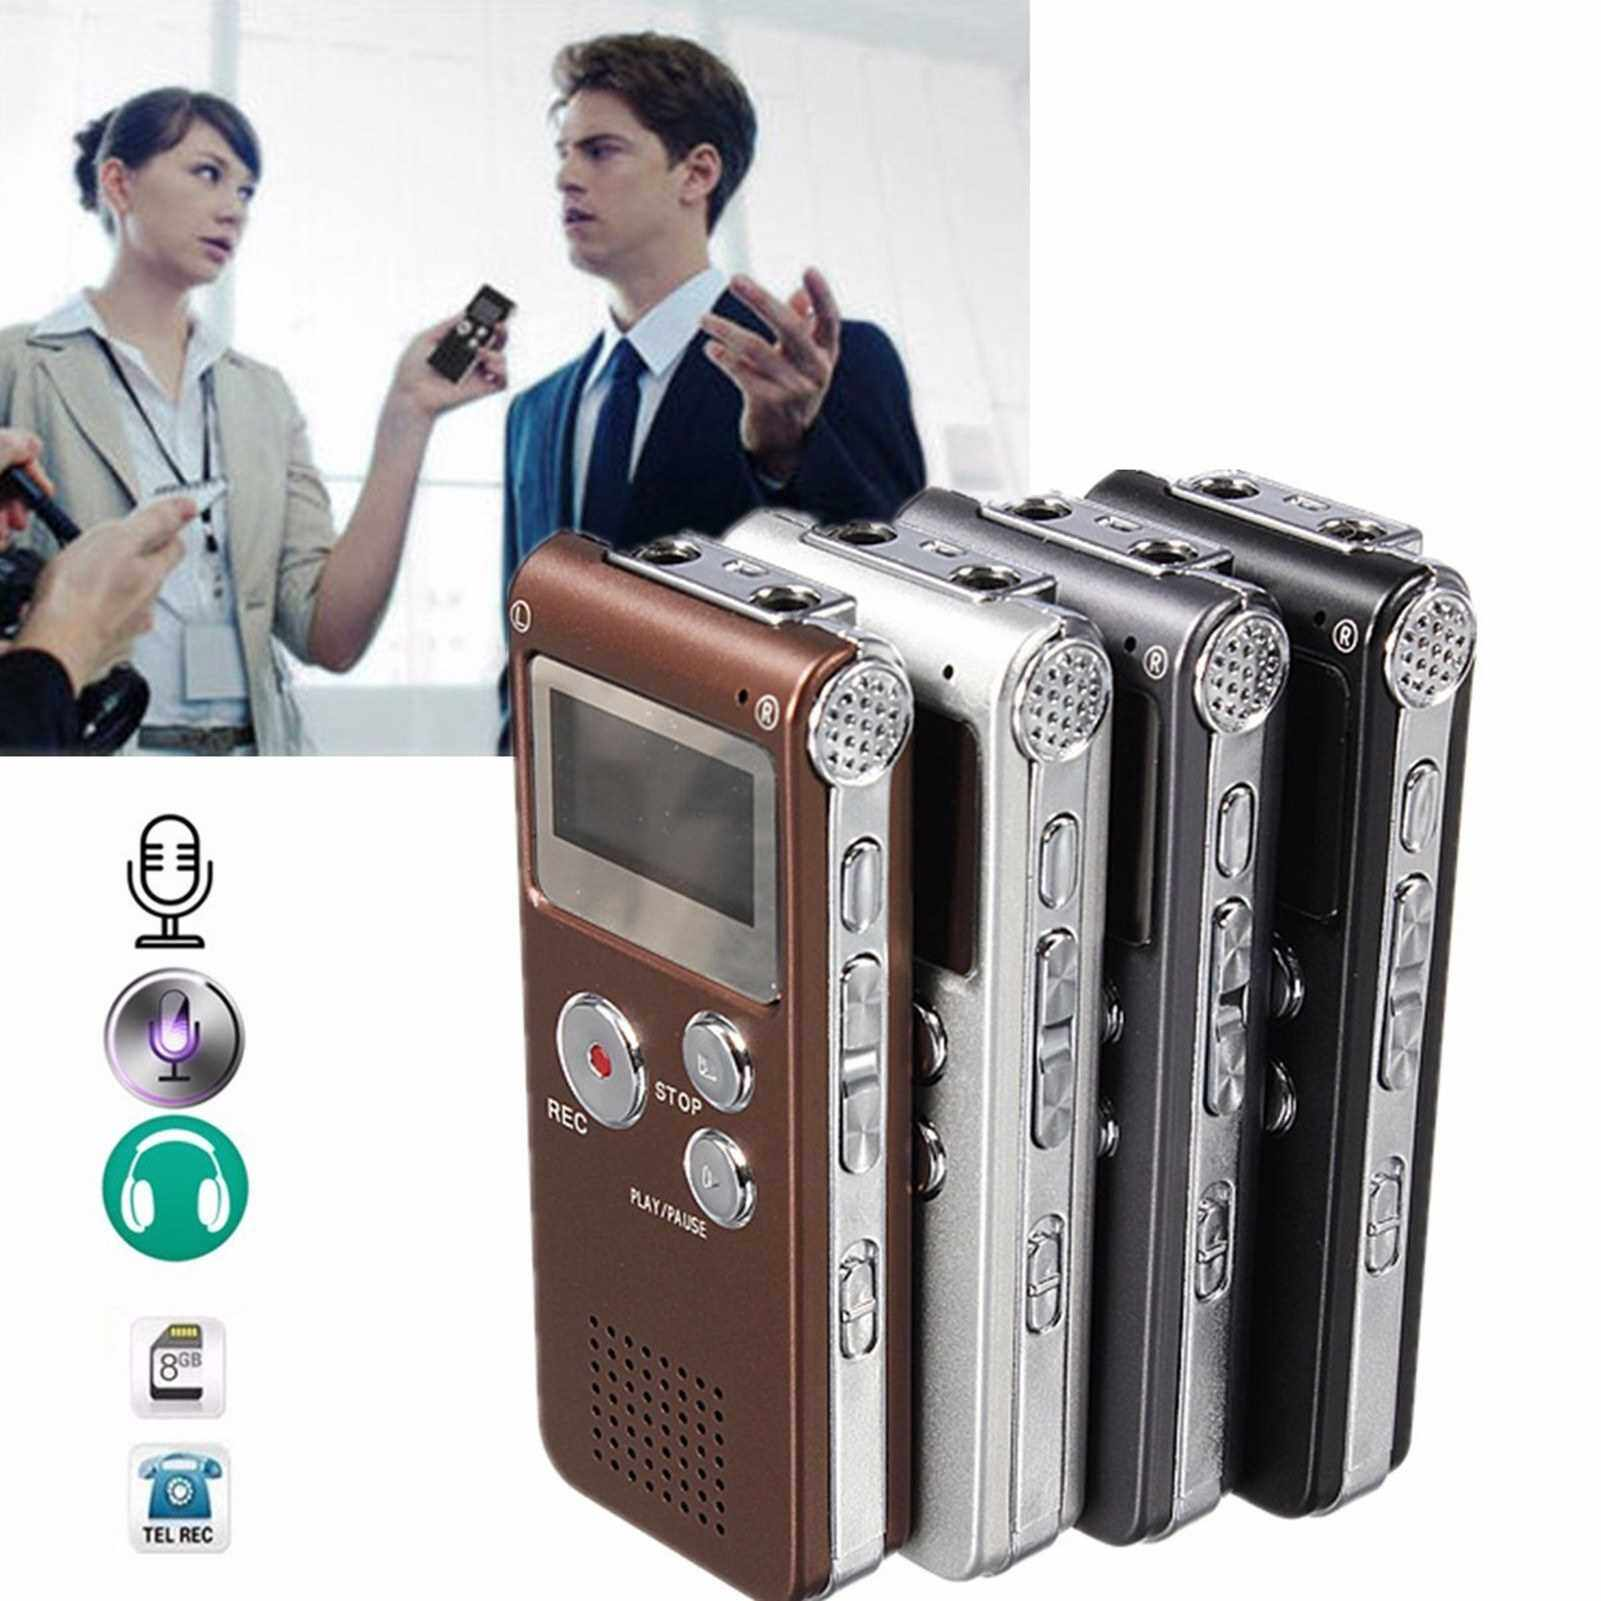 8GB Built-In Lithium Cell Digital Recorder Pen MP3 Music Player (Silver)